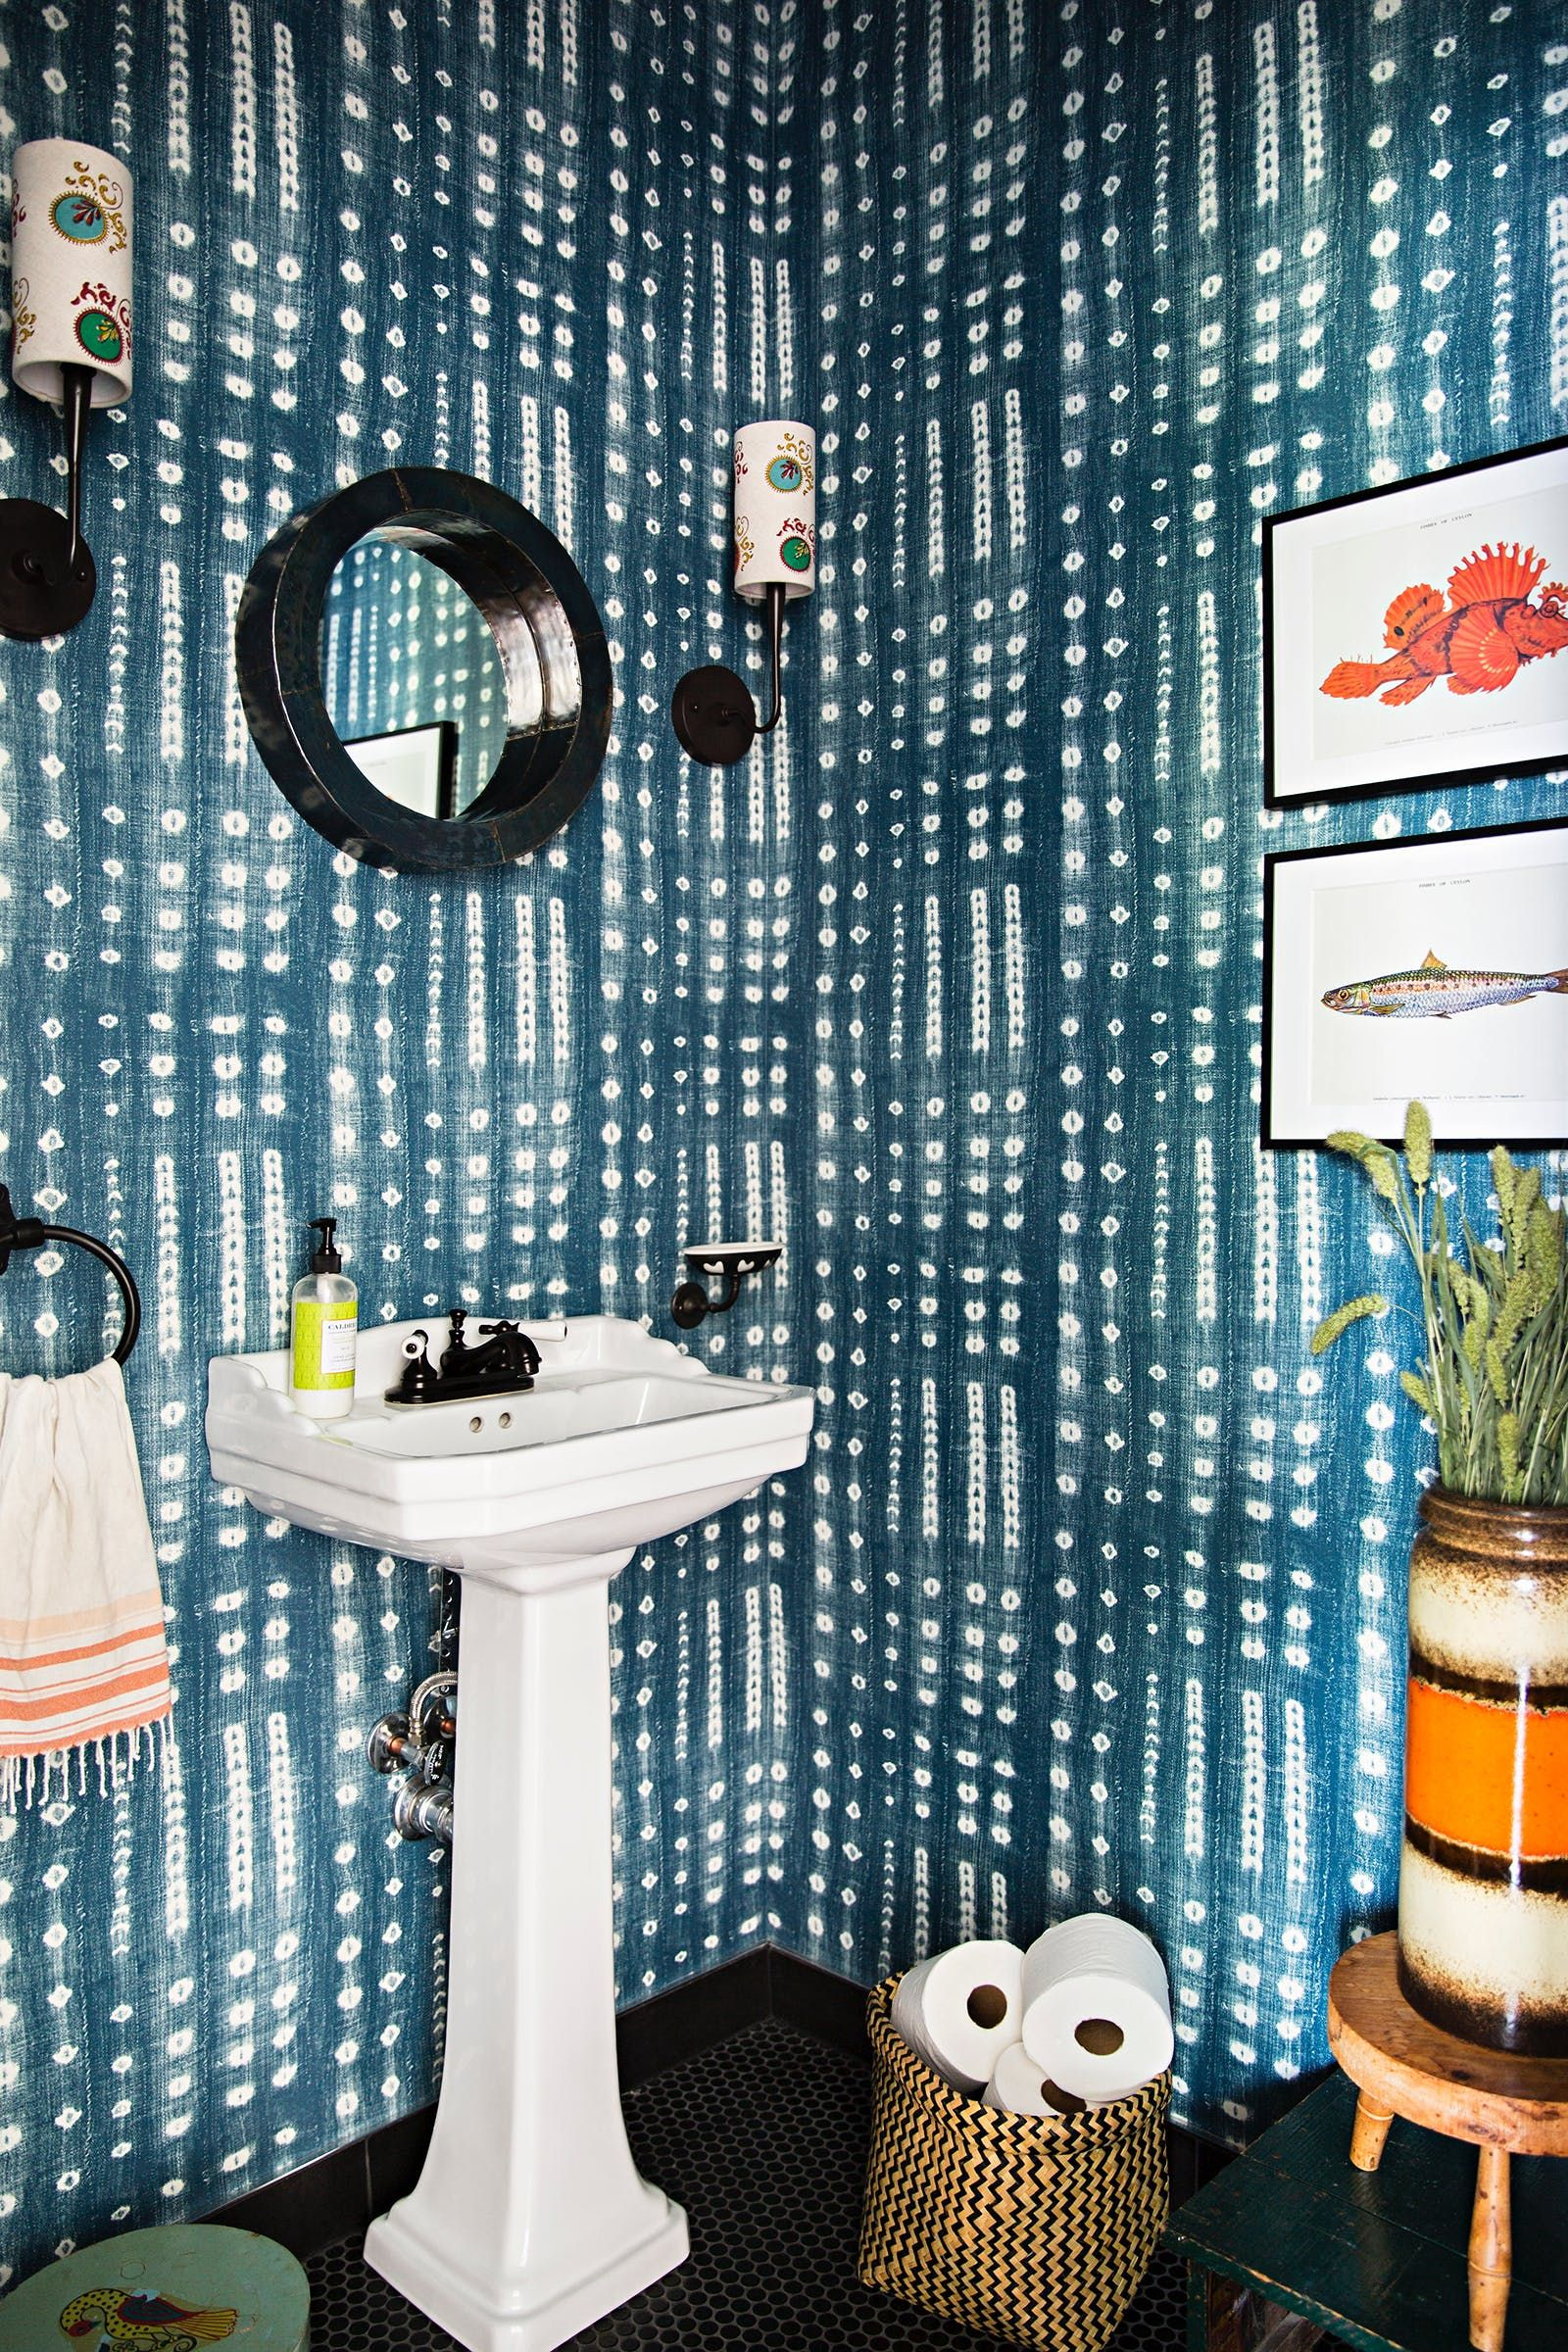 The power room features Studio Four NYC's Shibori Wallpaper, designed by Amber Lewis of Amber Interiors.